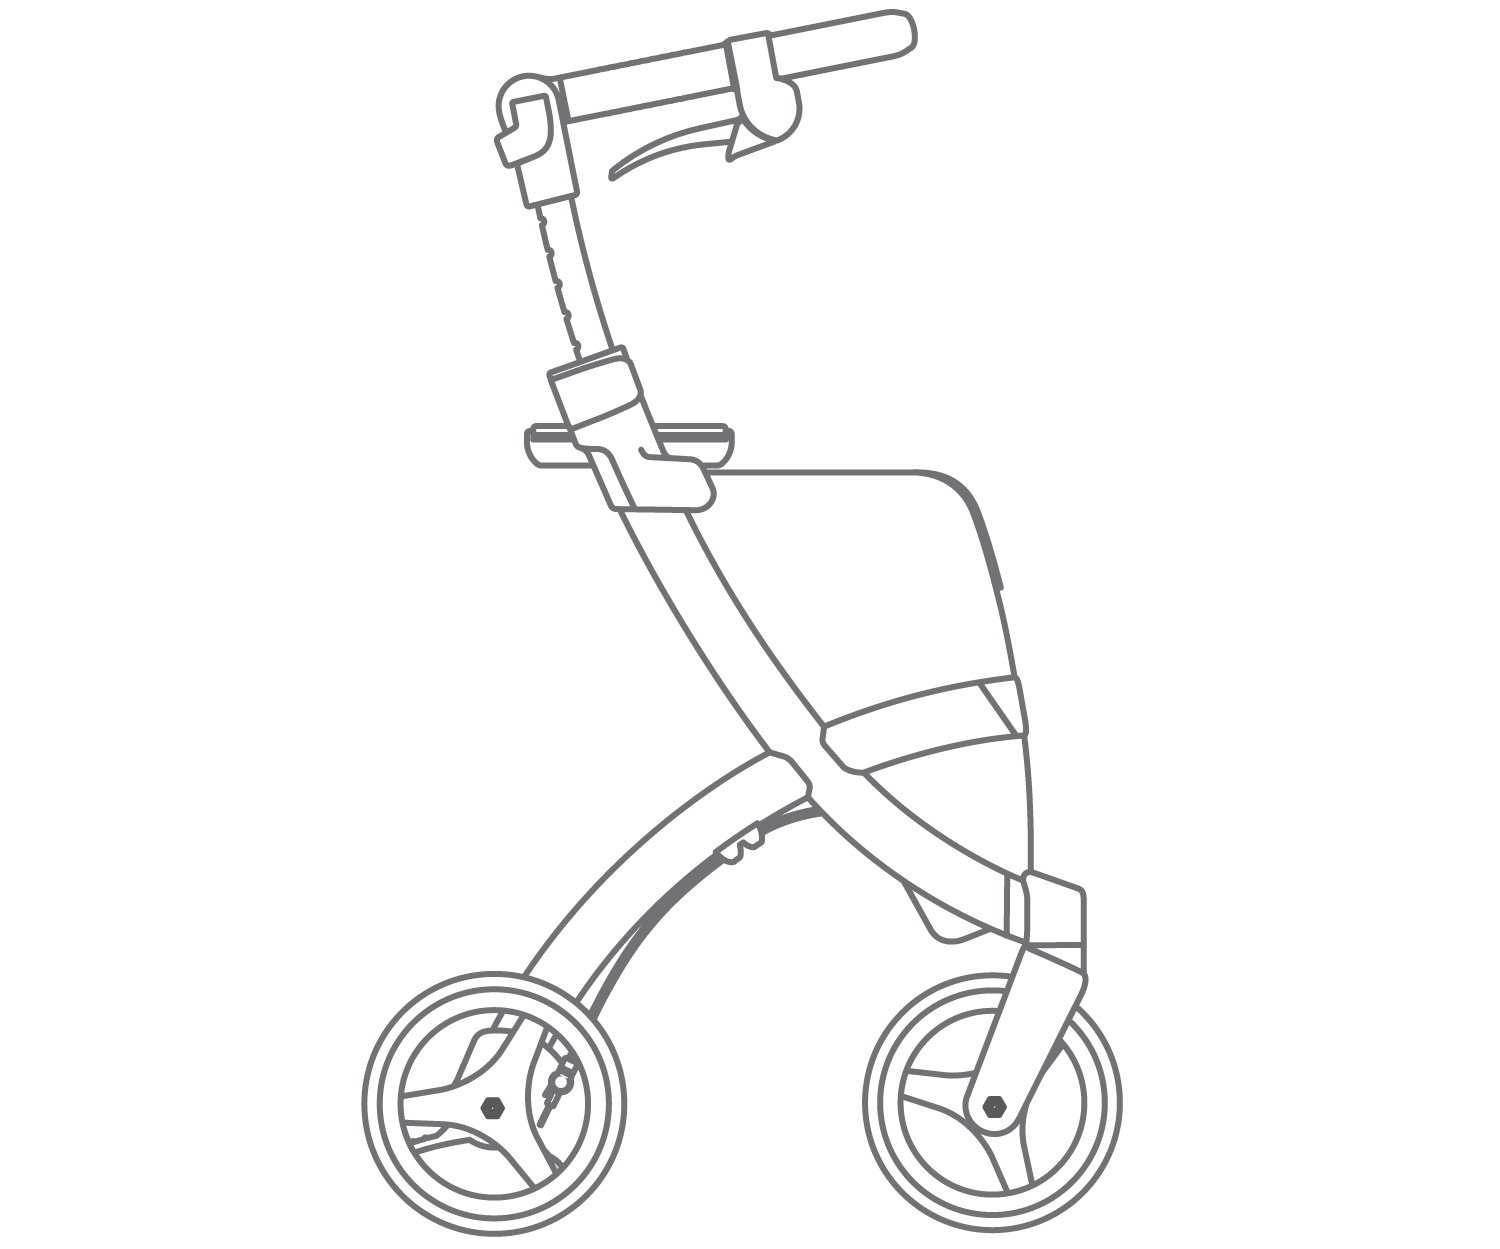 Drawing of the Rollz Flex classic brake